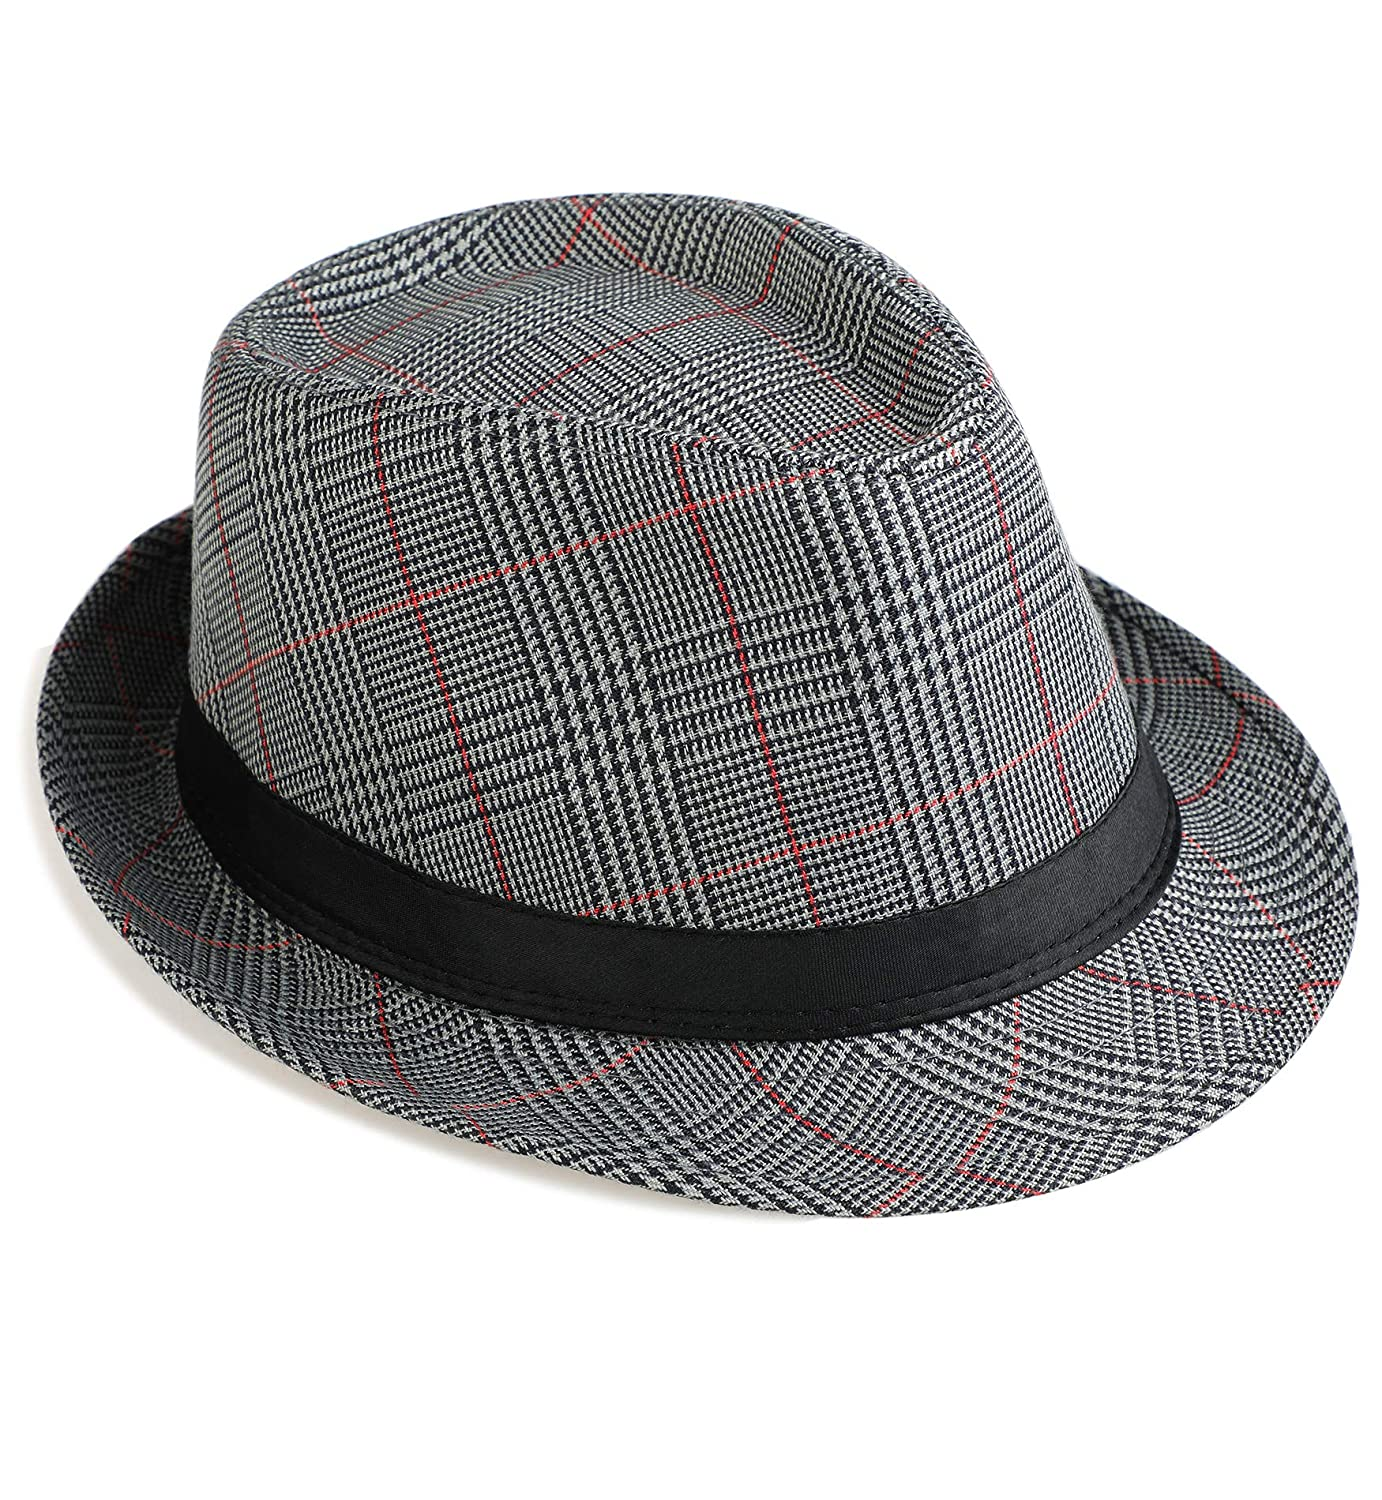 Amazon.com  Sumolux Mens Fedora Hat Hat Band British Style Light Weight  Panama Cap Winter Autumn  Sports   Outdoors 12d1769006c8